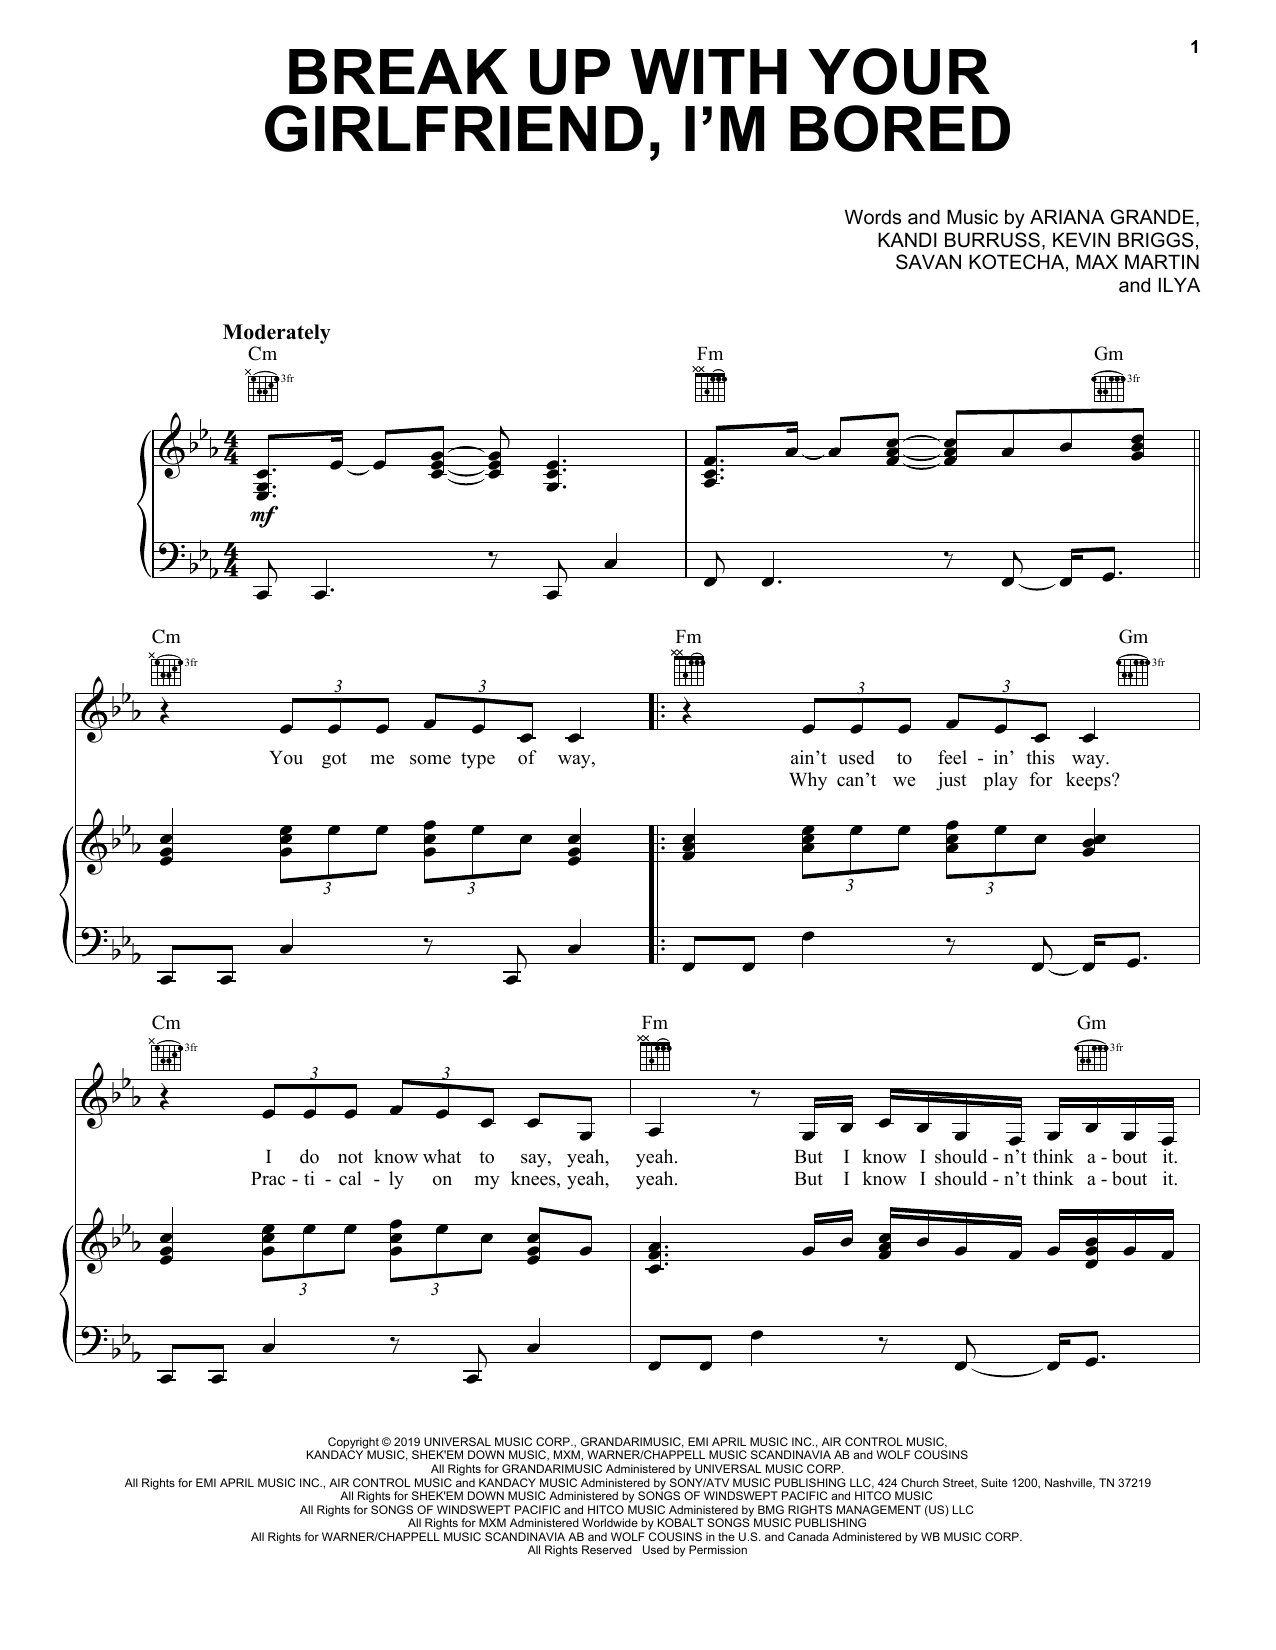 Ariana Grande break up with your girlfriend, i'm bored sheet music notes and chords